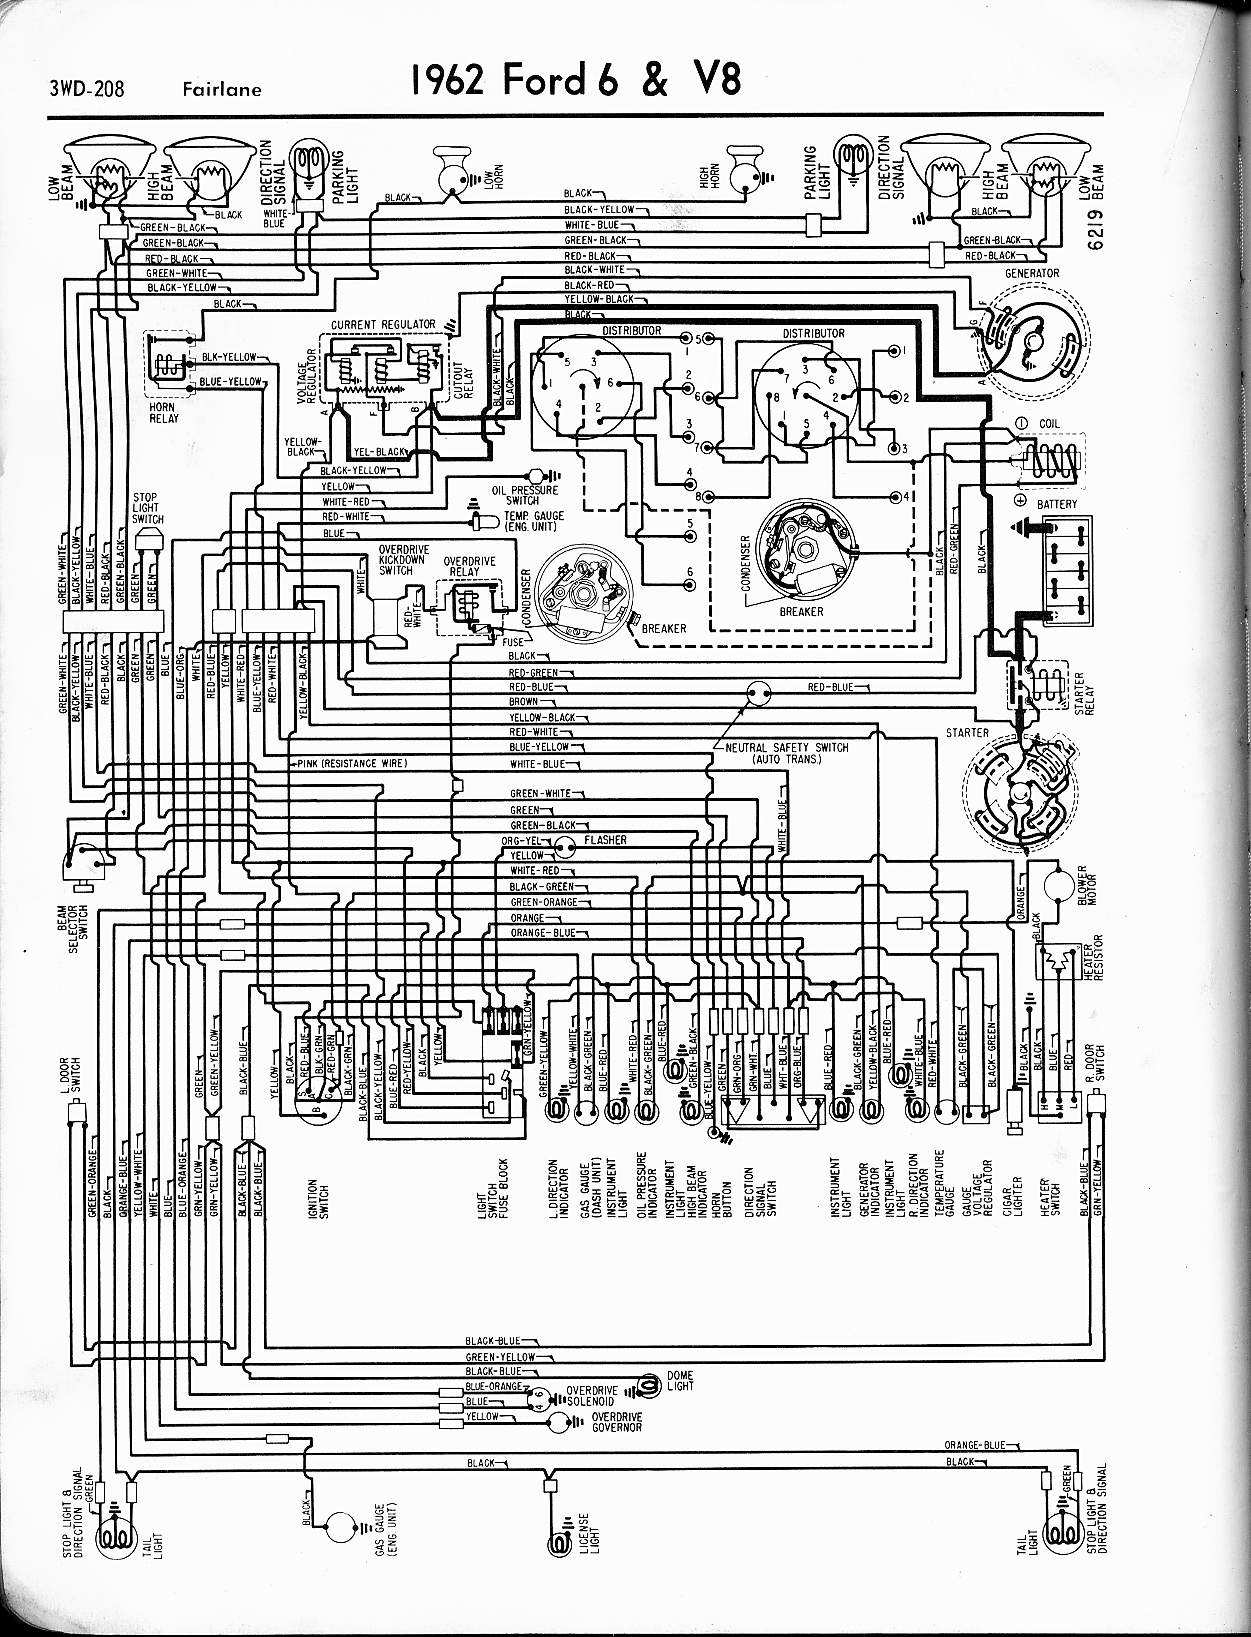 62 Ford Generator Wiring Diagram - DIY Wiring Diagrams •